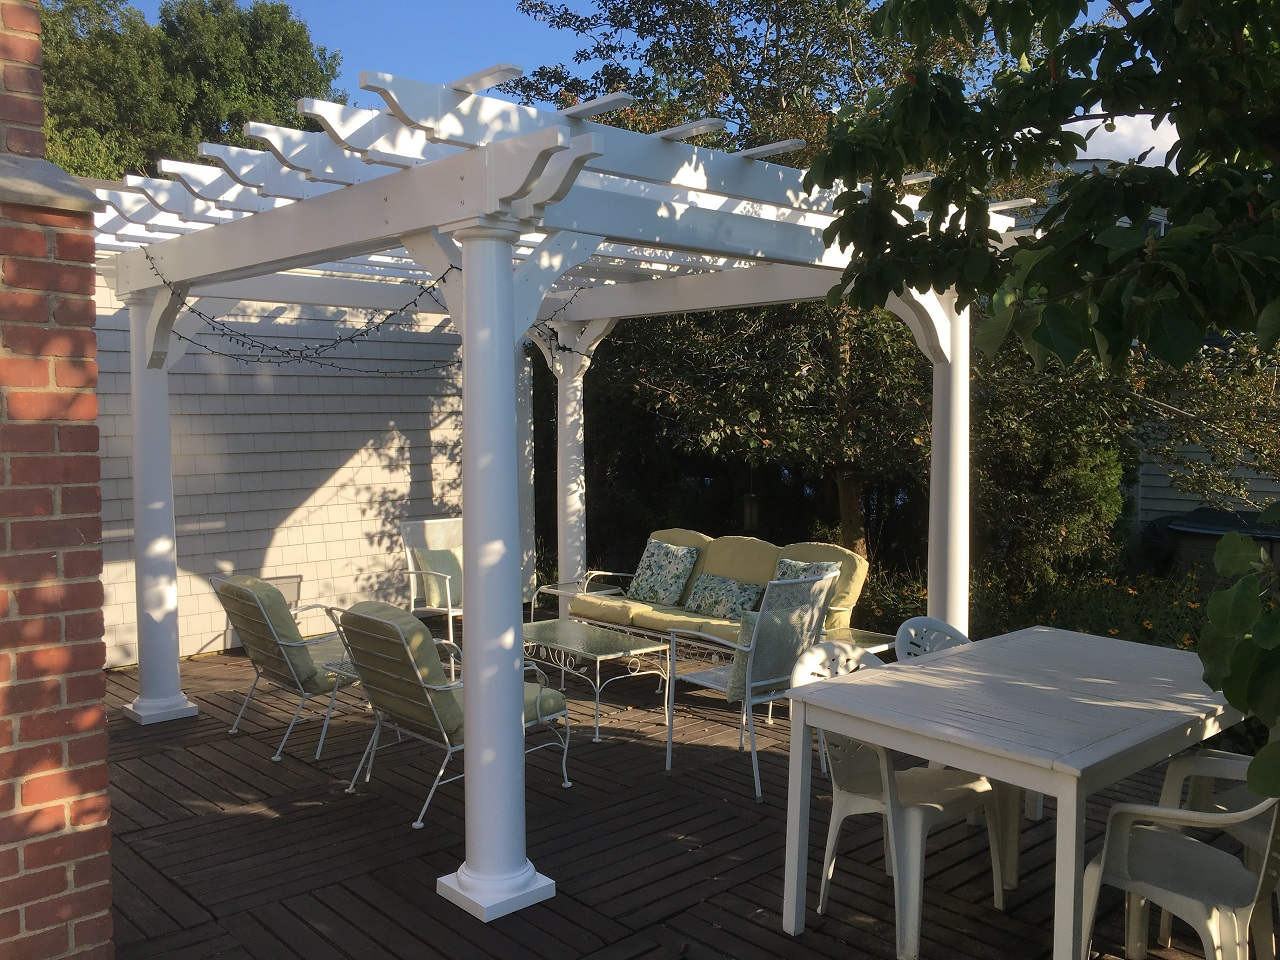 This customer created a cozy outdoor living space with plenty of privacy with a 10x10 vinyl pergola, furniture and card table.